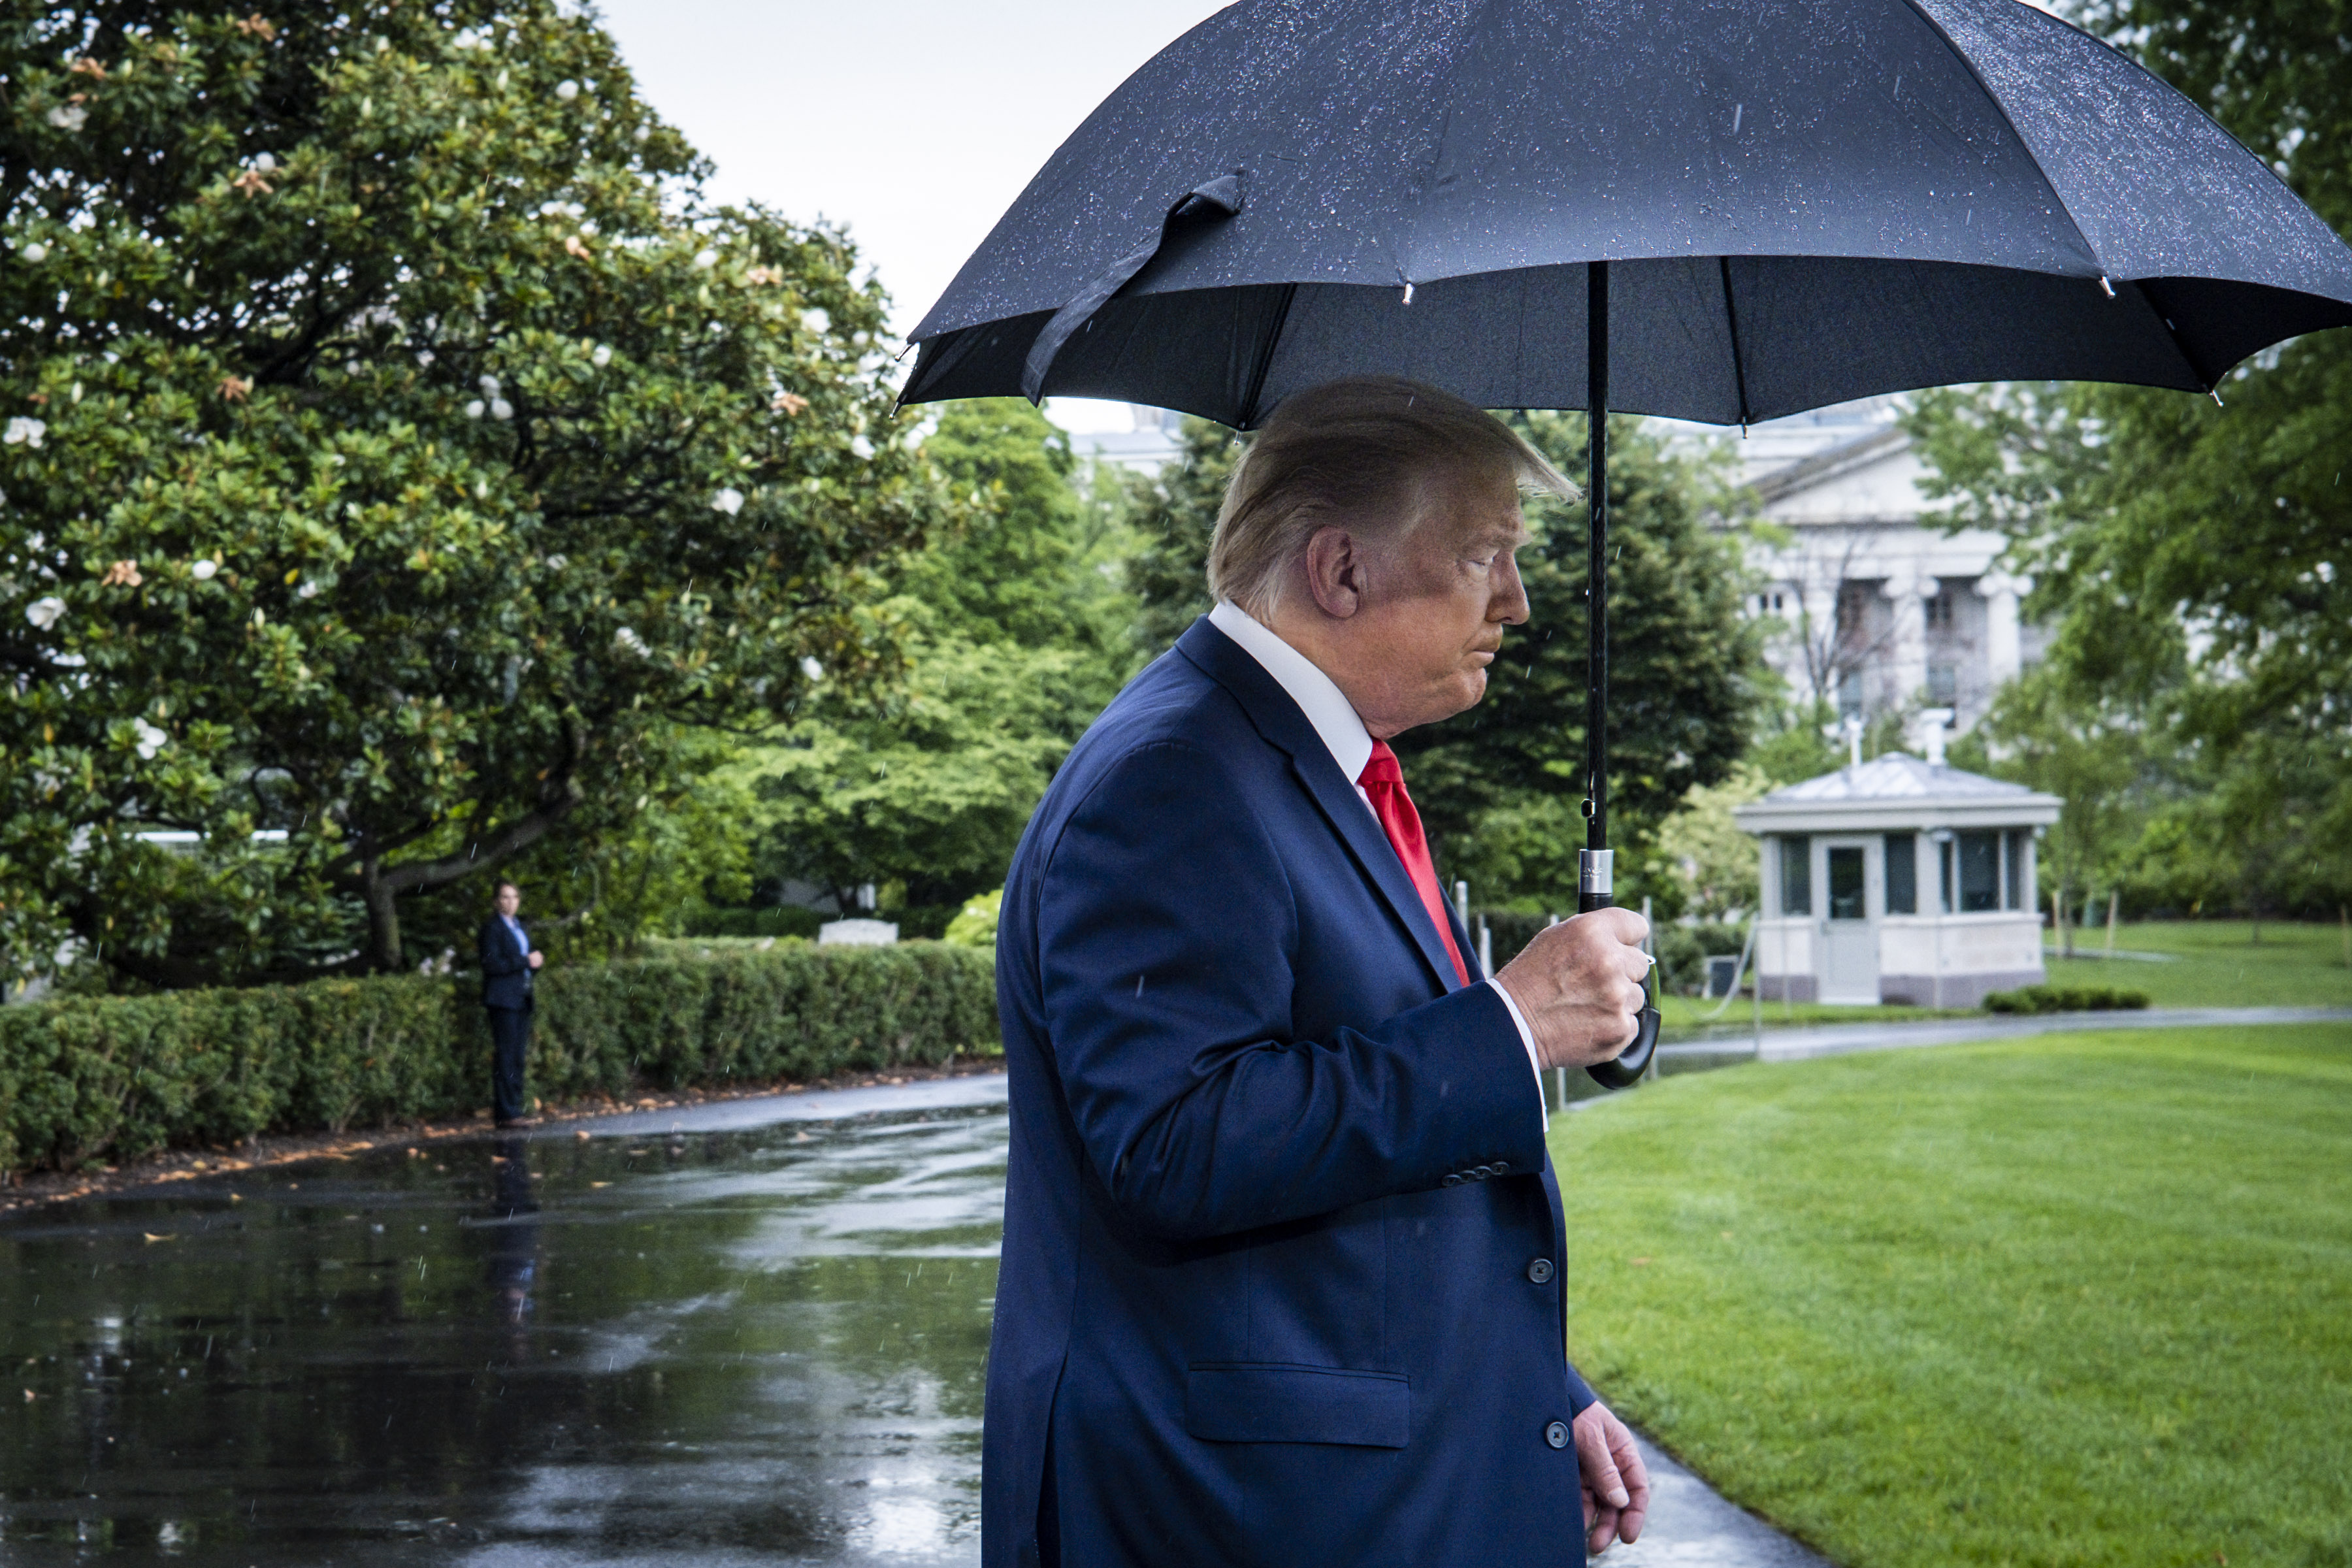 WASHINGTON, DC - JUNE 20:President Donald Trump walks in the rain toward Marine One after stopping to speak to the media on the South Lawn of the White House as he prepares to depart for a rally in Tulsa, OK, on June 20, 2020 in Washington, DC. The rally is Trump's first in months since the coronavirus lockdown and his campaign acknowledged that six staff members had tested positive for the virus during routine screening. (Photo by Pete Marovich/Getty Images)